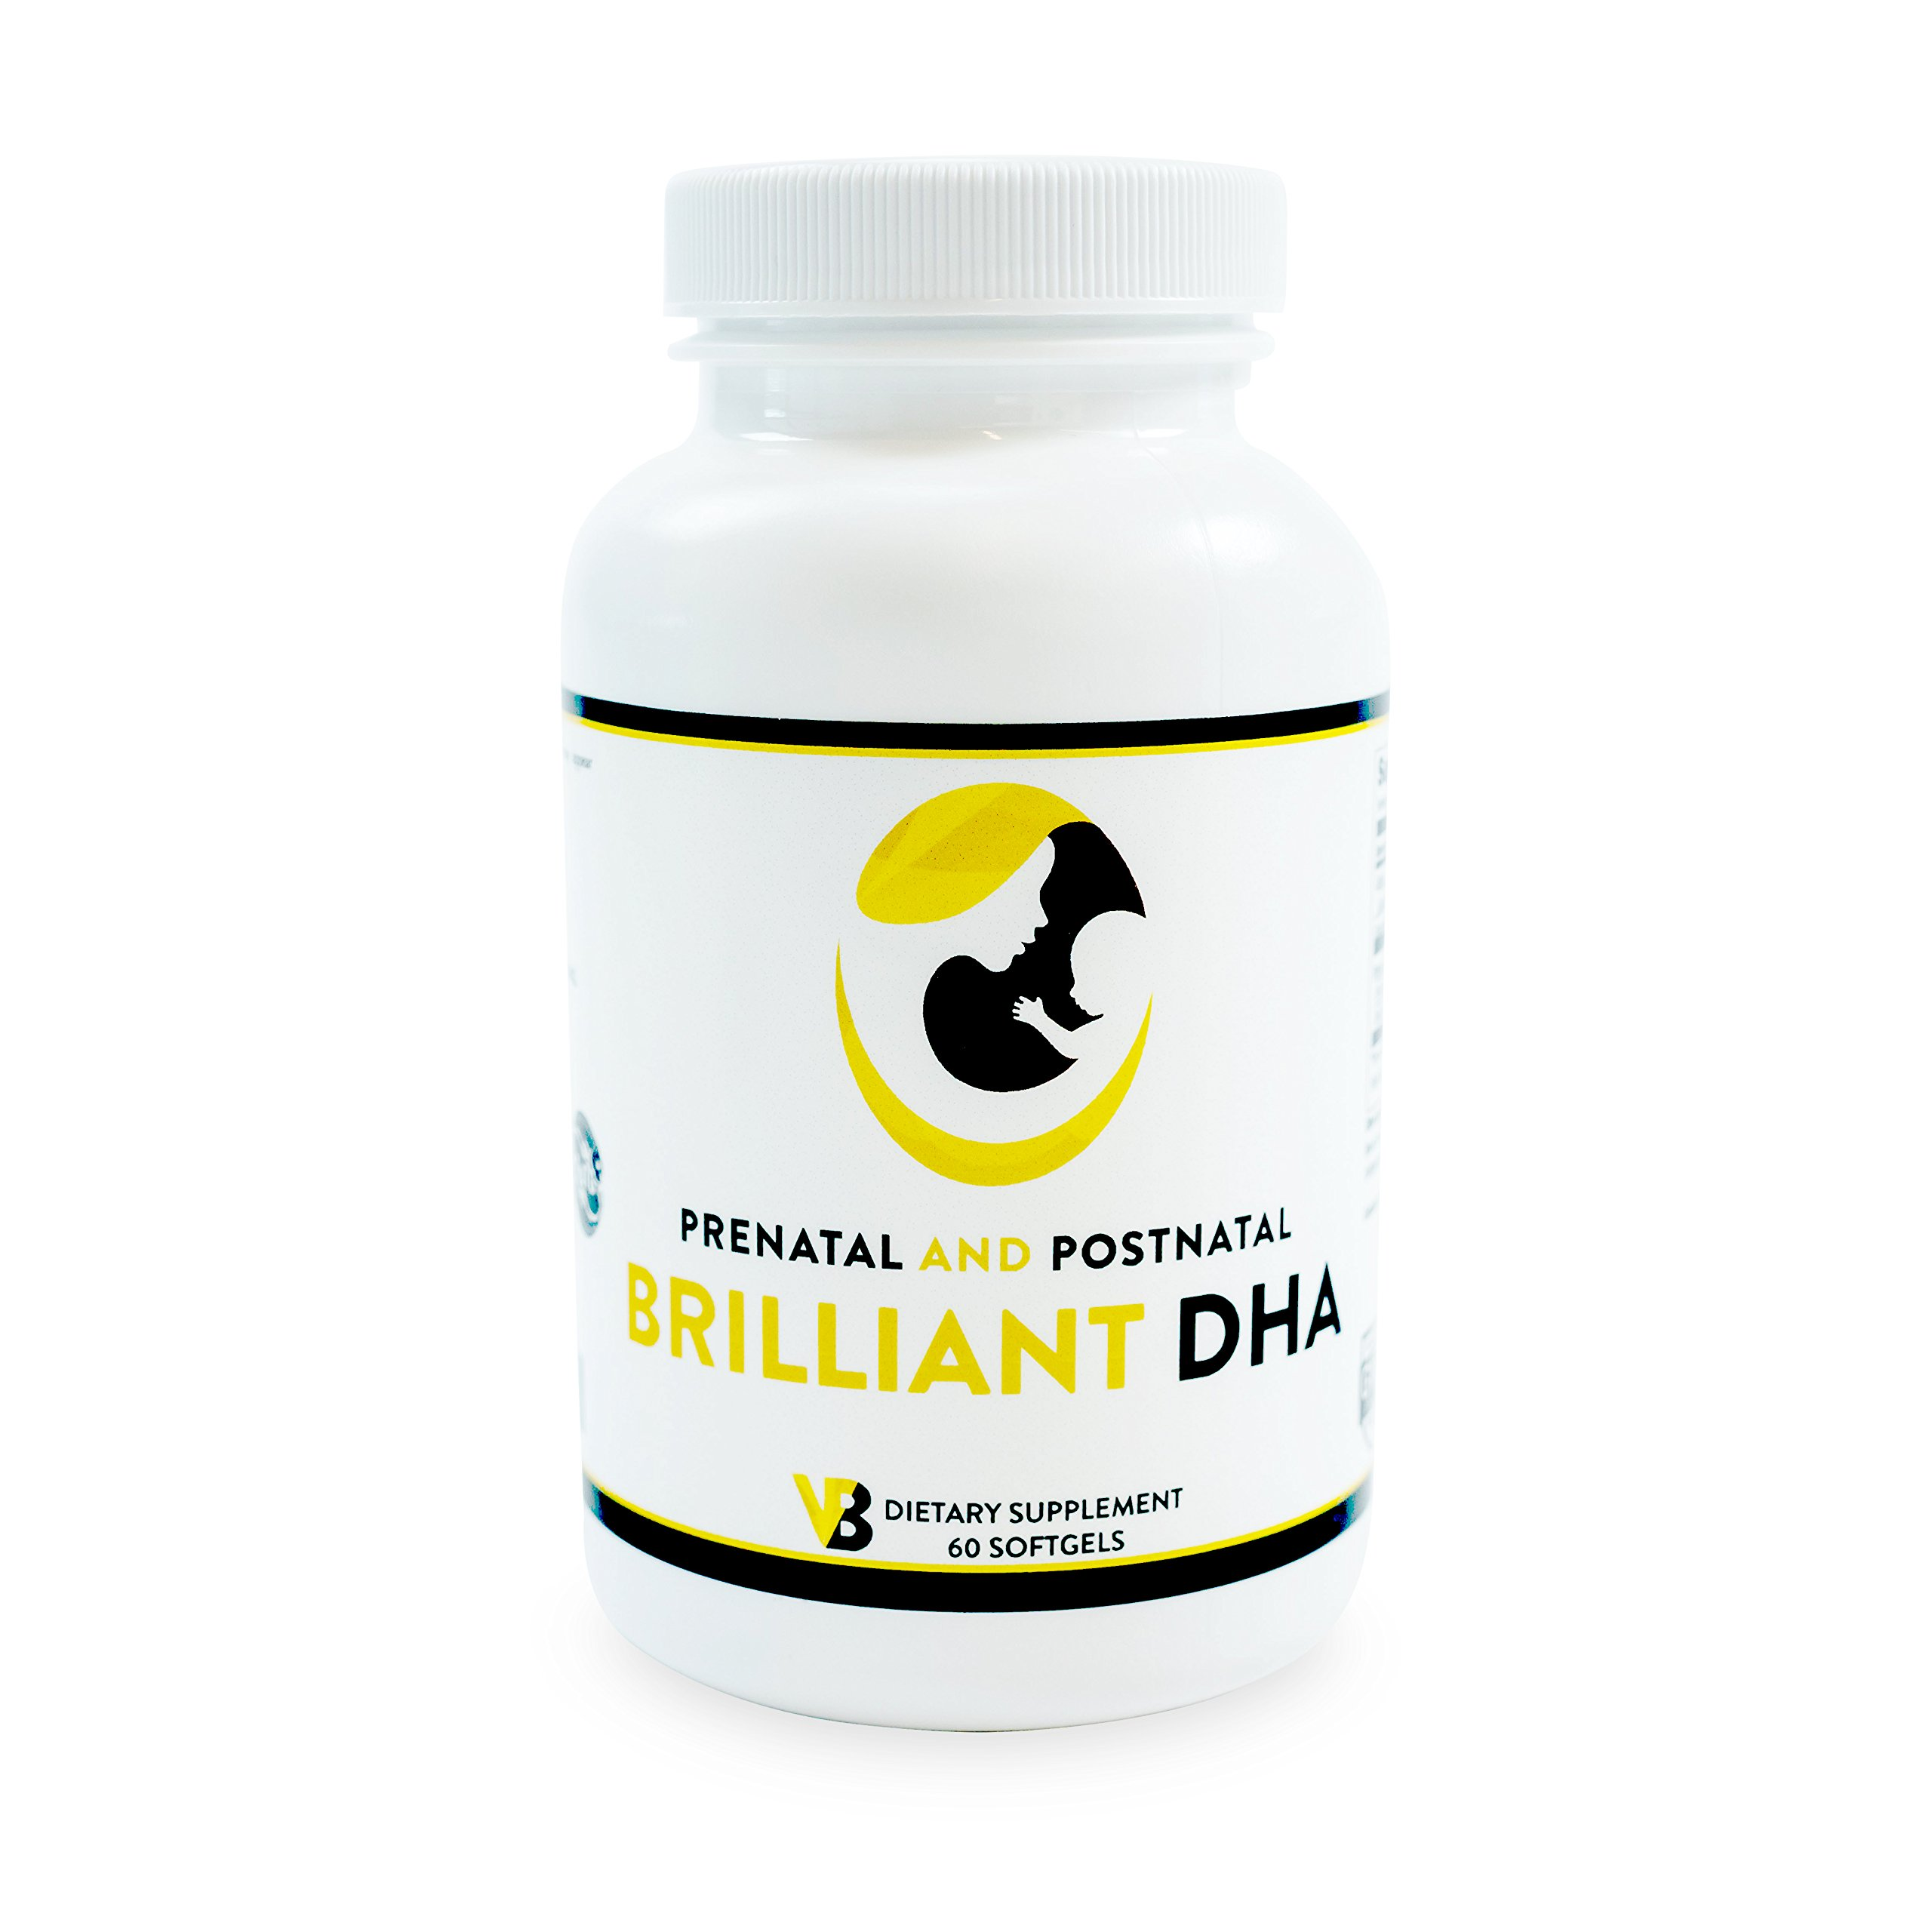 DHA Vitamins for Pregnancy/Postpartum, Supplements for Prenatal/Postnatal Women, Pure Triglyceride Omega 3 Small Fish 500/110 mg DHA/EPA - Vibrant Beginning Brilliant DHA 2-Month Supply (60 softgels) by Vibrant Beginning